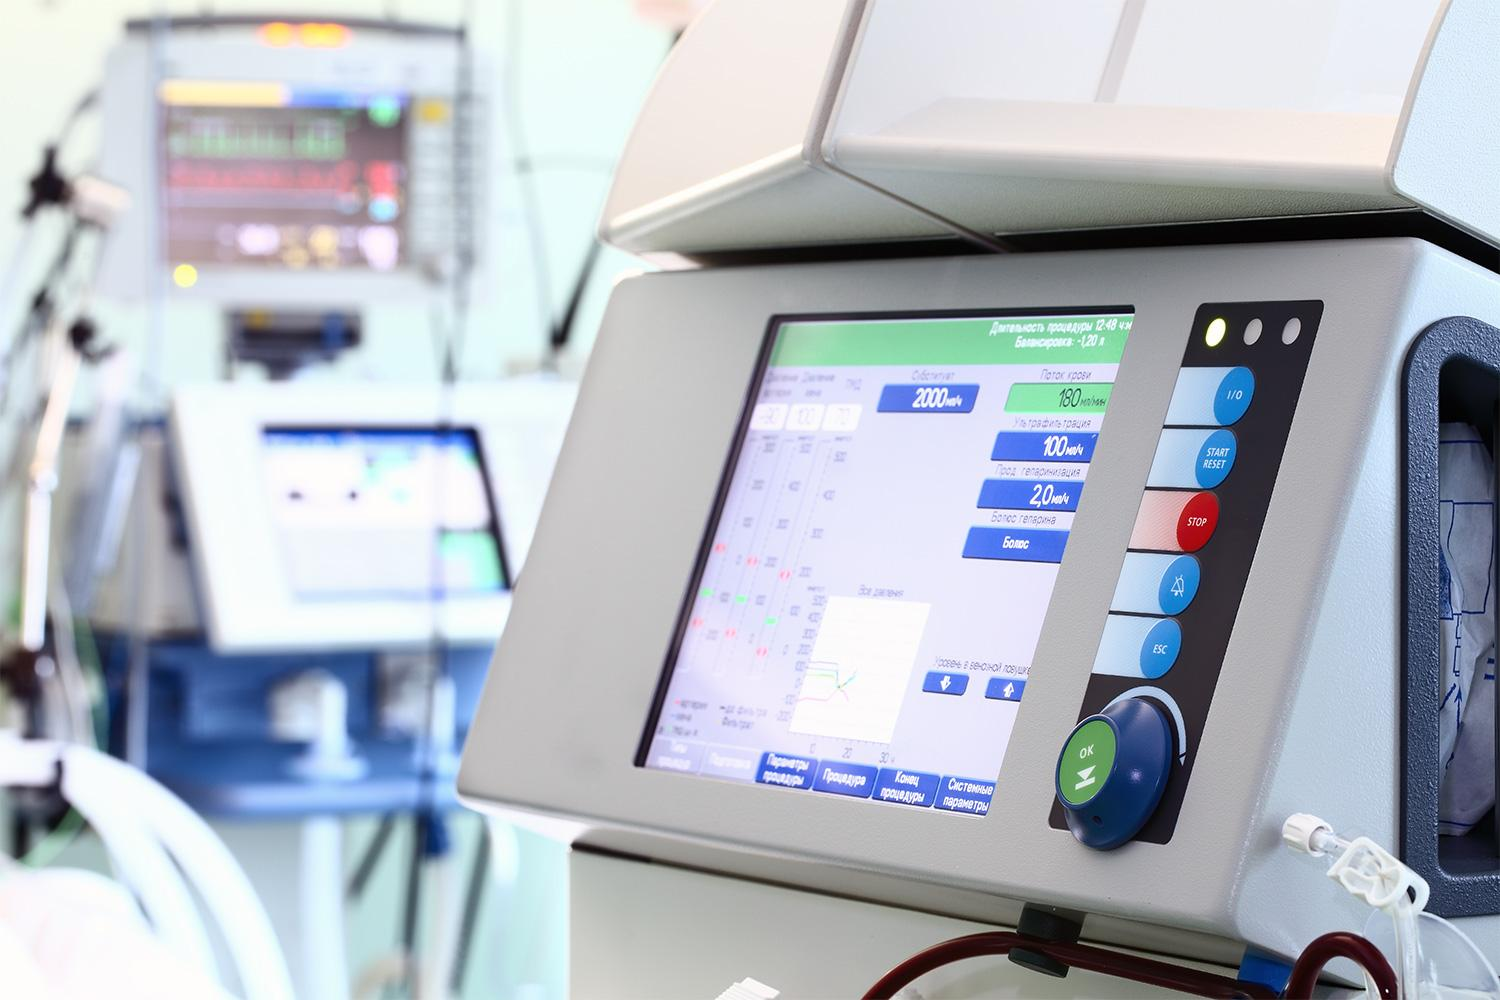 One recurring problem with HMIs is design. Often difficulties arise because the engineers in the design process aren't end-users and so displays and functionality can be convoluted